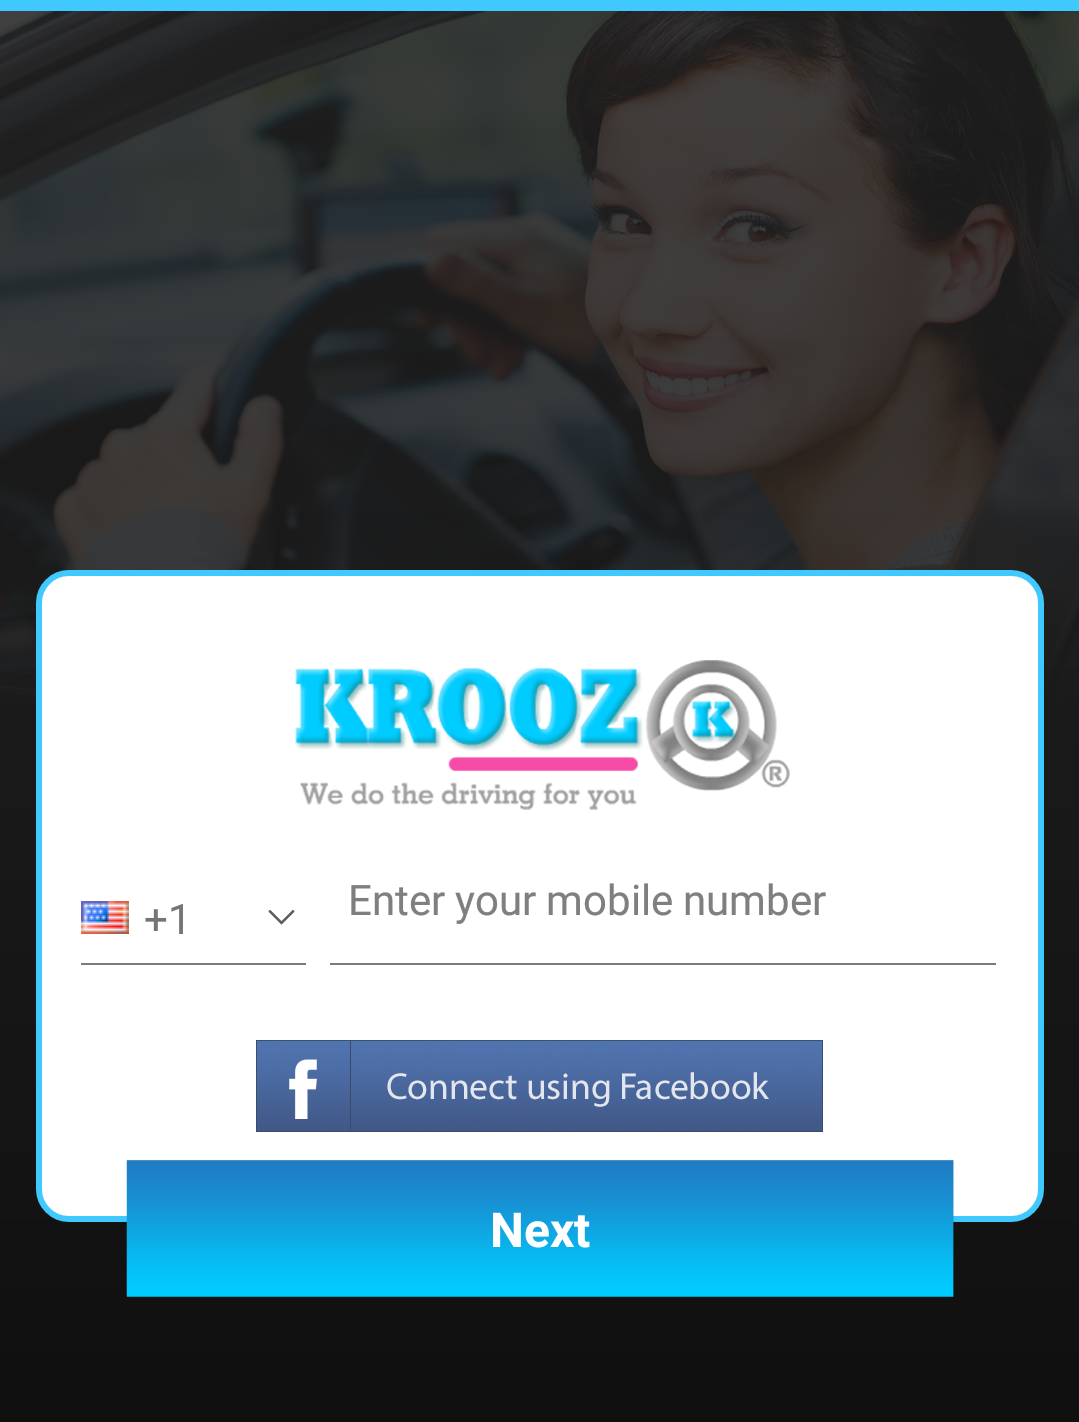 KROOZ customer App